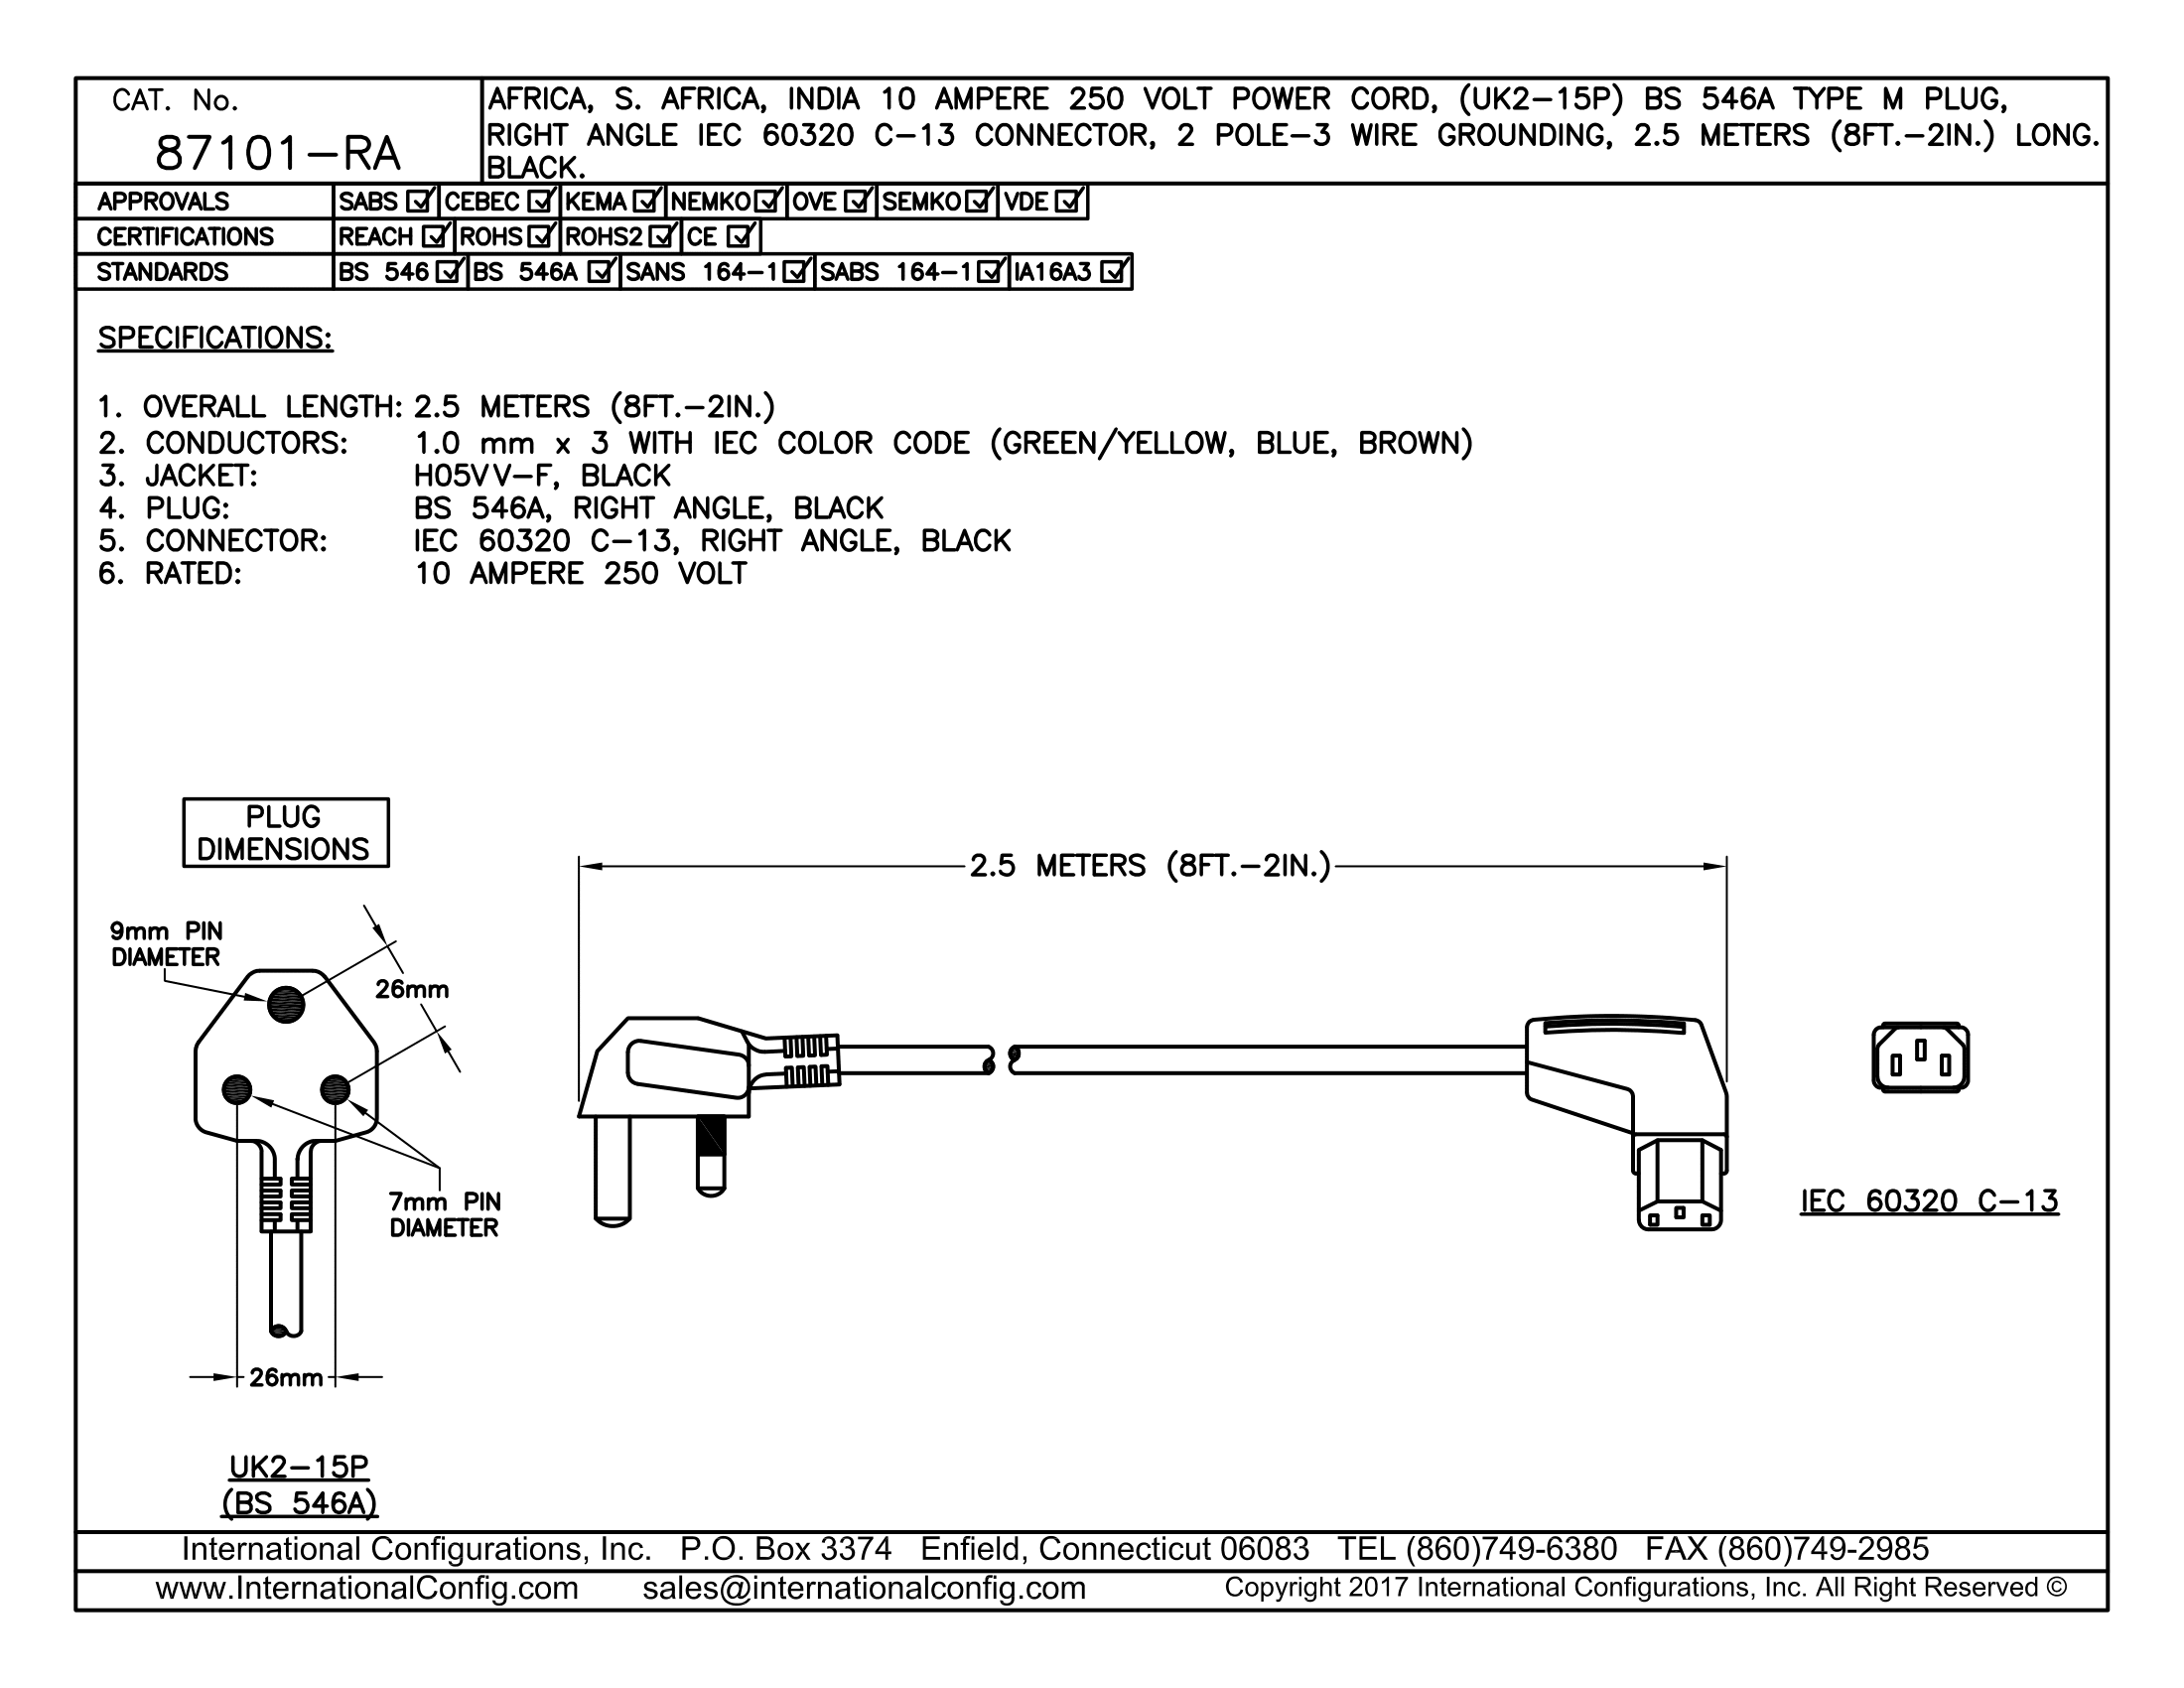 87101-ra - Right Angle C-13 Connector